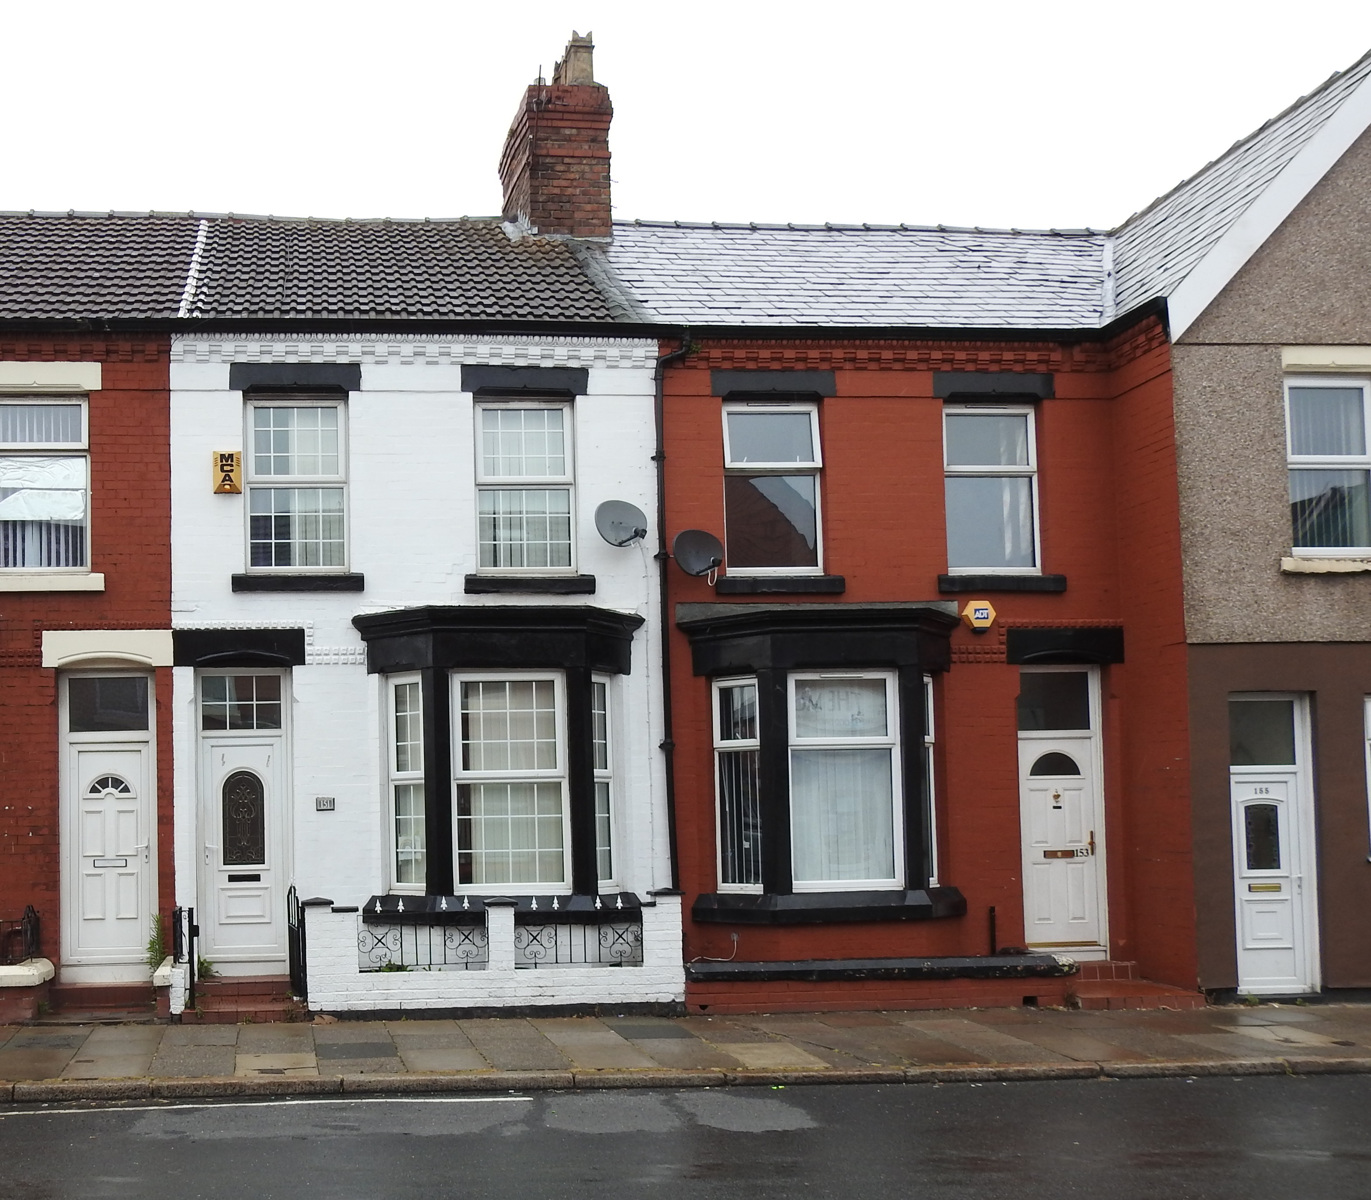 3 Bedroom Terraced House For Sale In Liverpool, L6